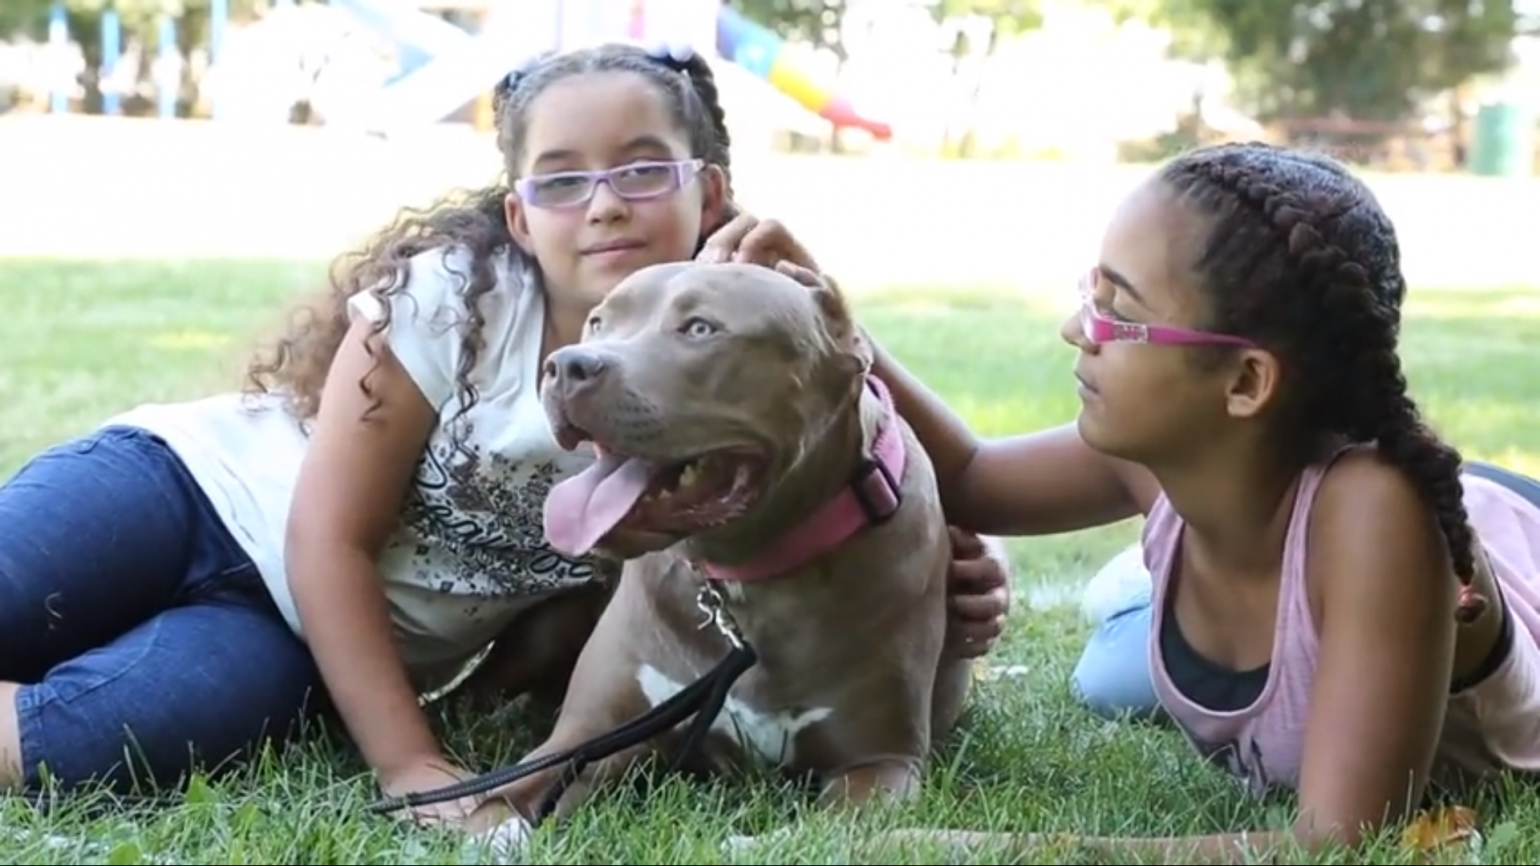 The Dog That Changed Two Little Girls' Lives